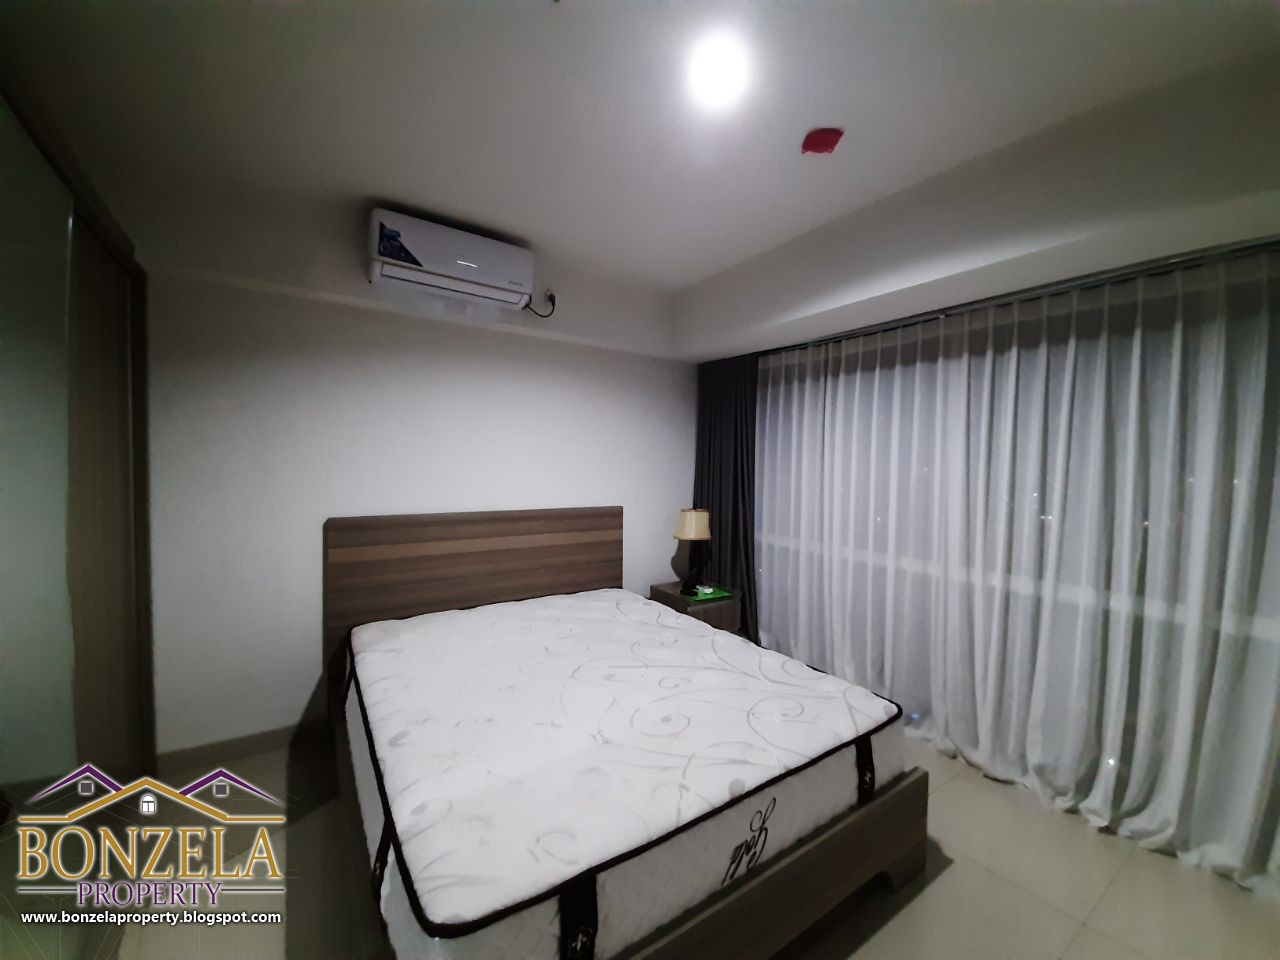 For Rent Apartemen di Jakarta Timur The H Residence